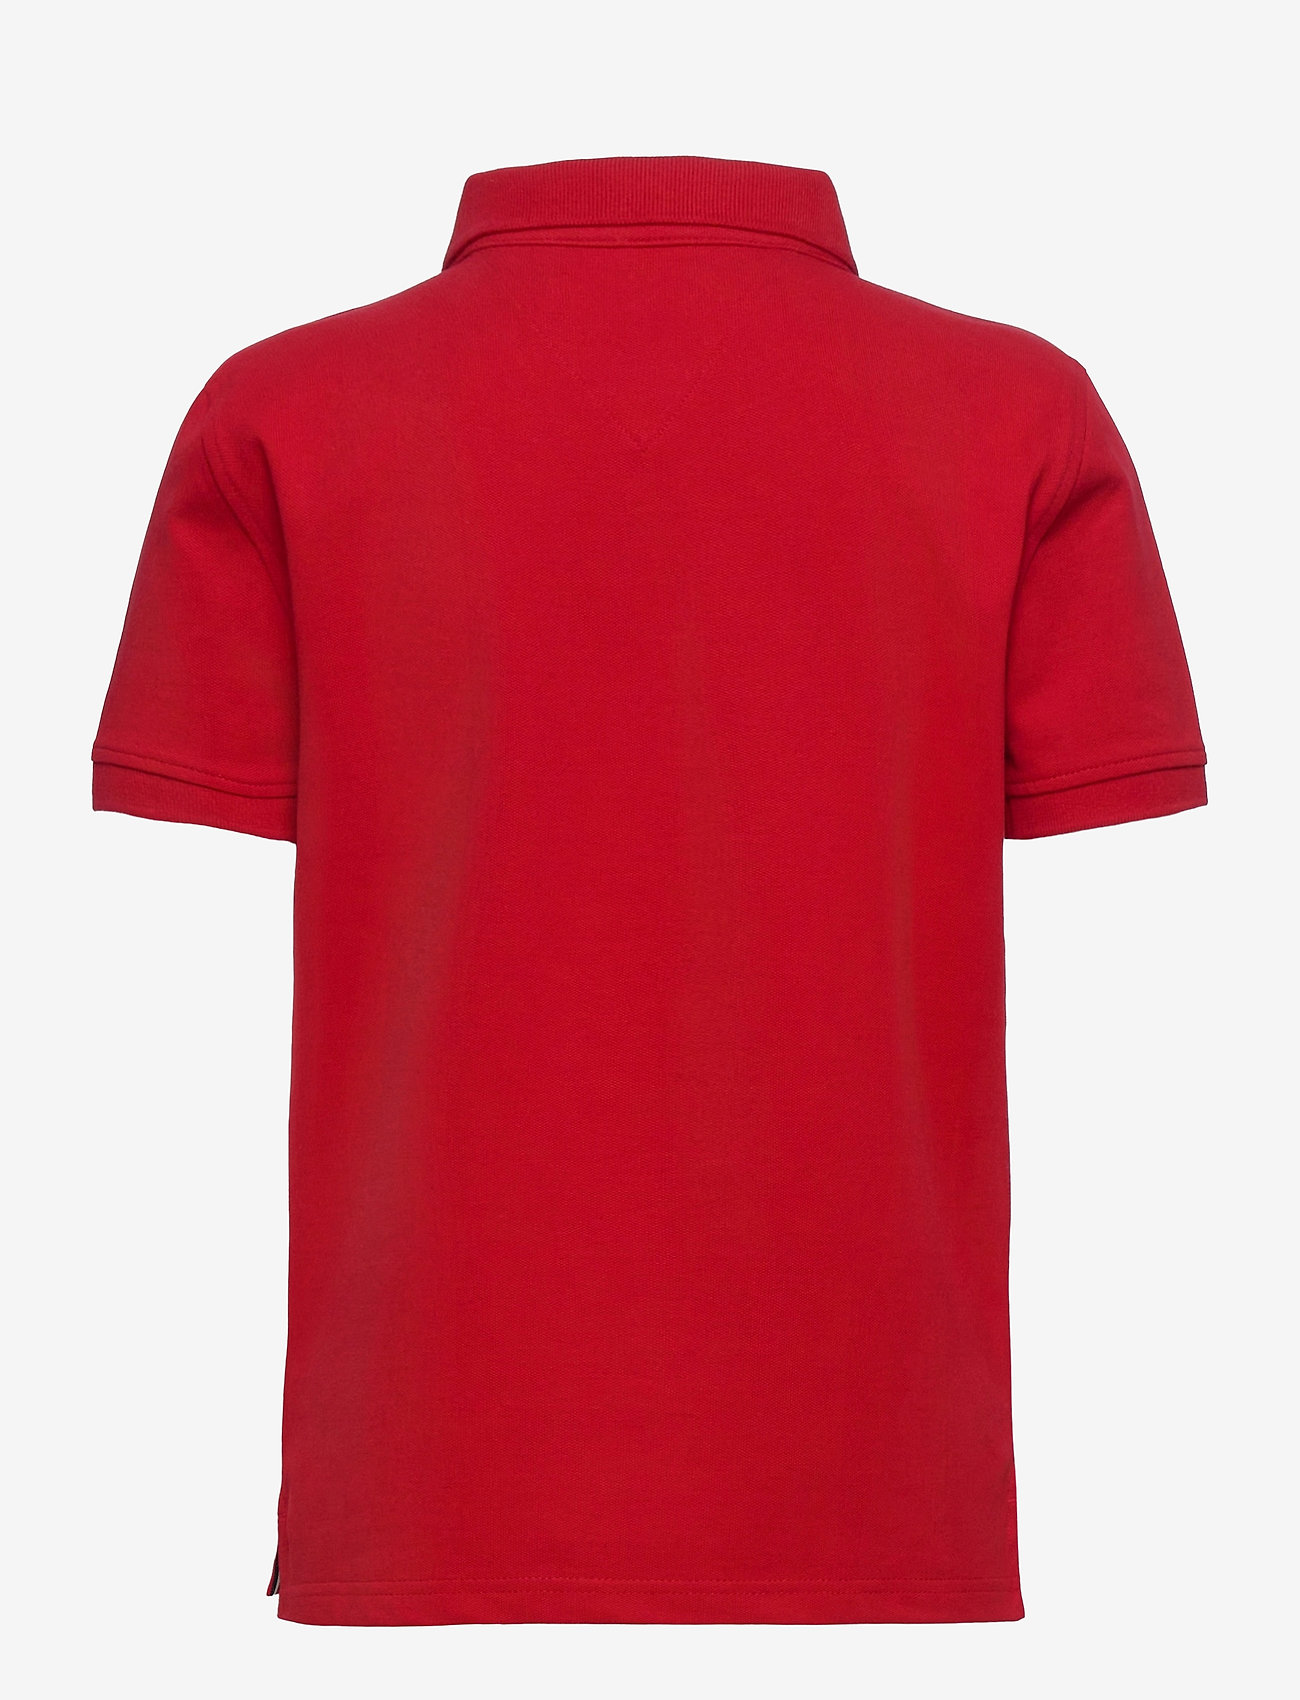 Tommy Hilfiger - BOYS TOMMY POLO S/S - polo shirts - apple red - 1